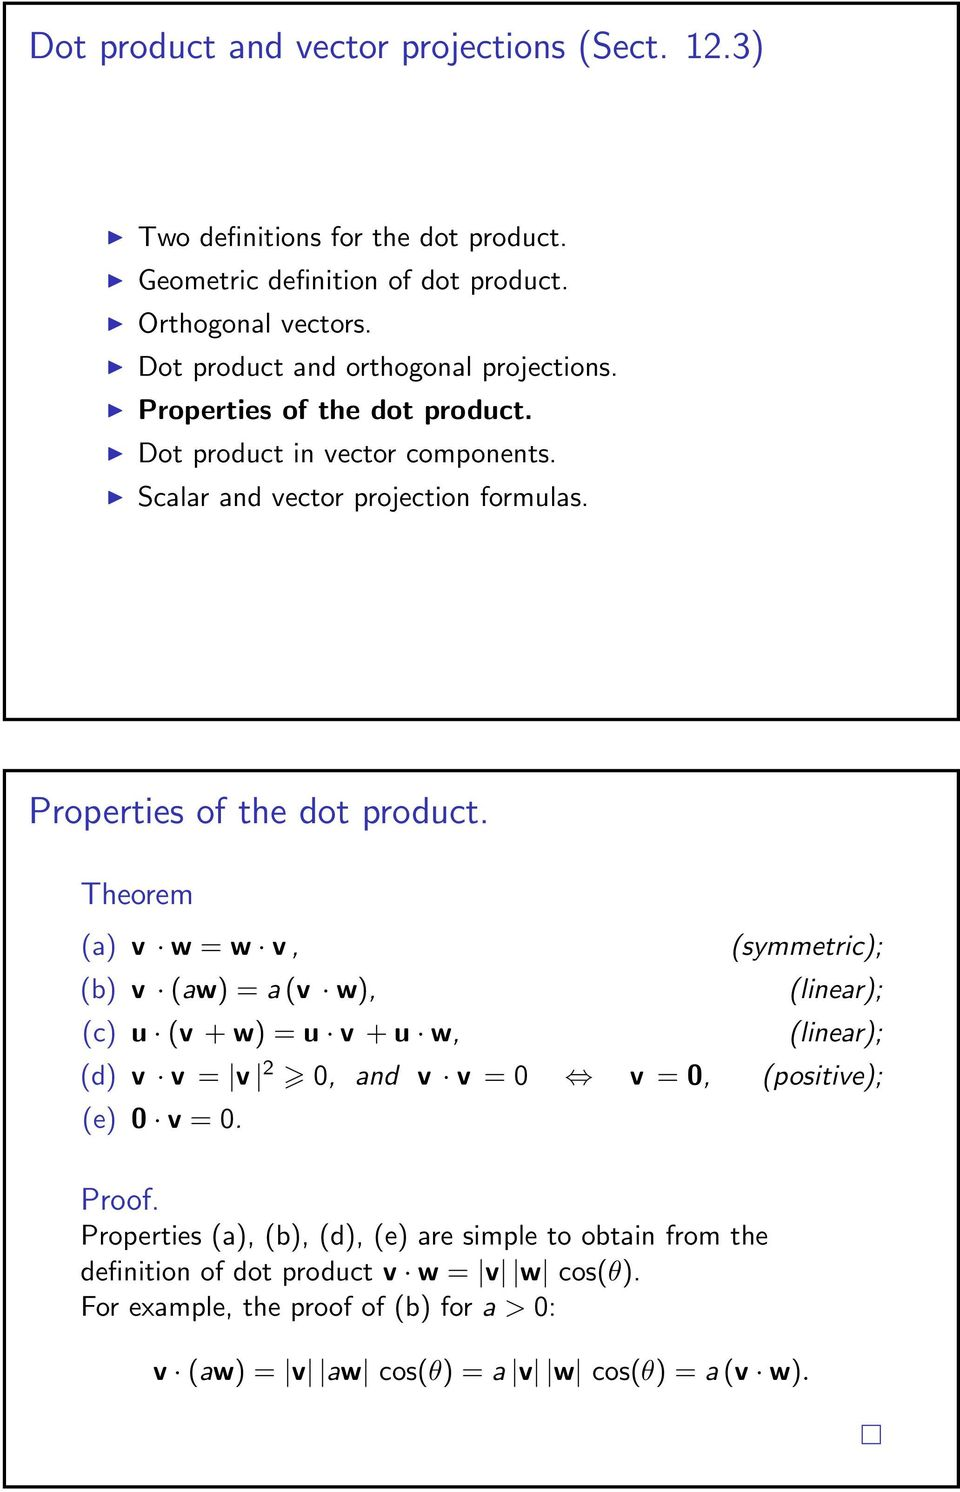 Properties of the dot product.